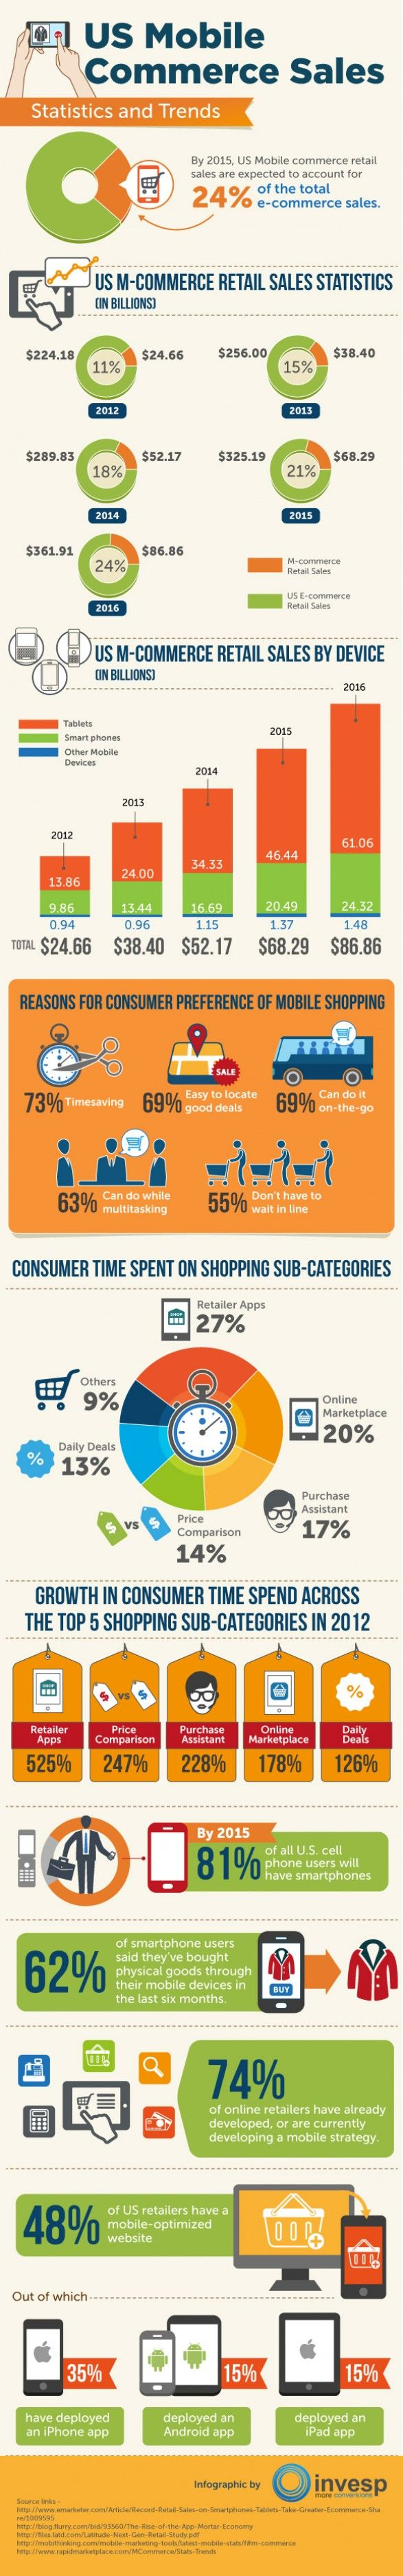 us-mobile-commerce-sales-statistics-and-trends